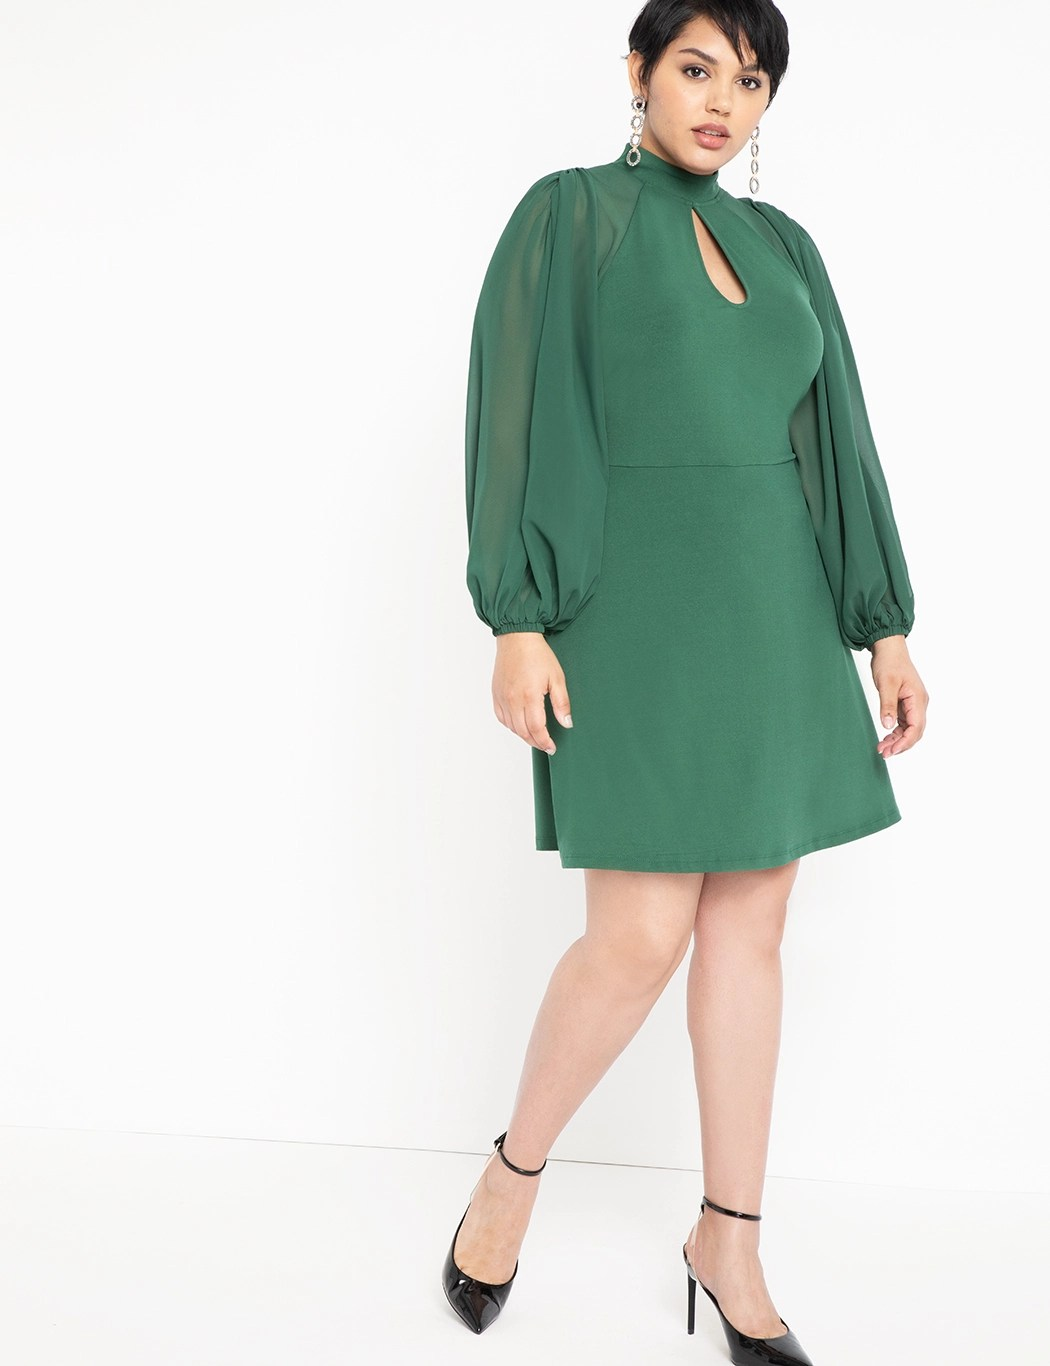 Slit Front Dress with Sheer Sleeves 8